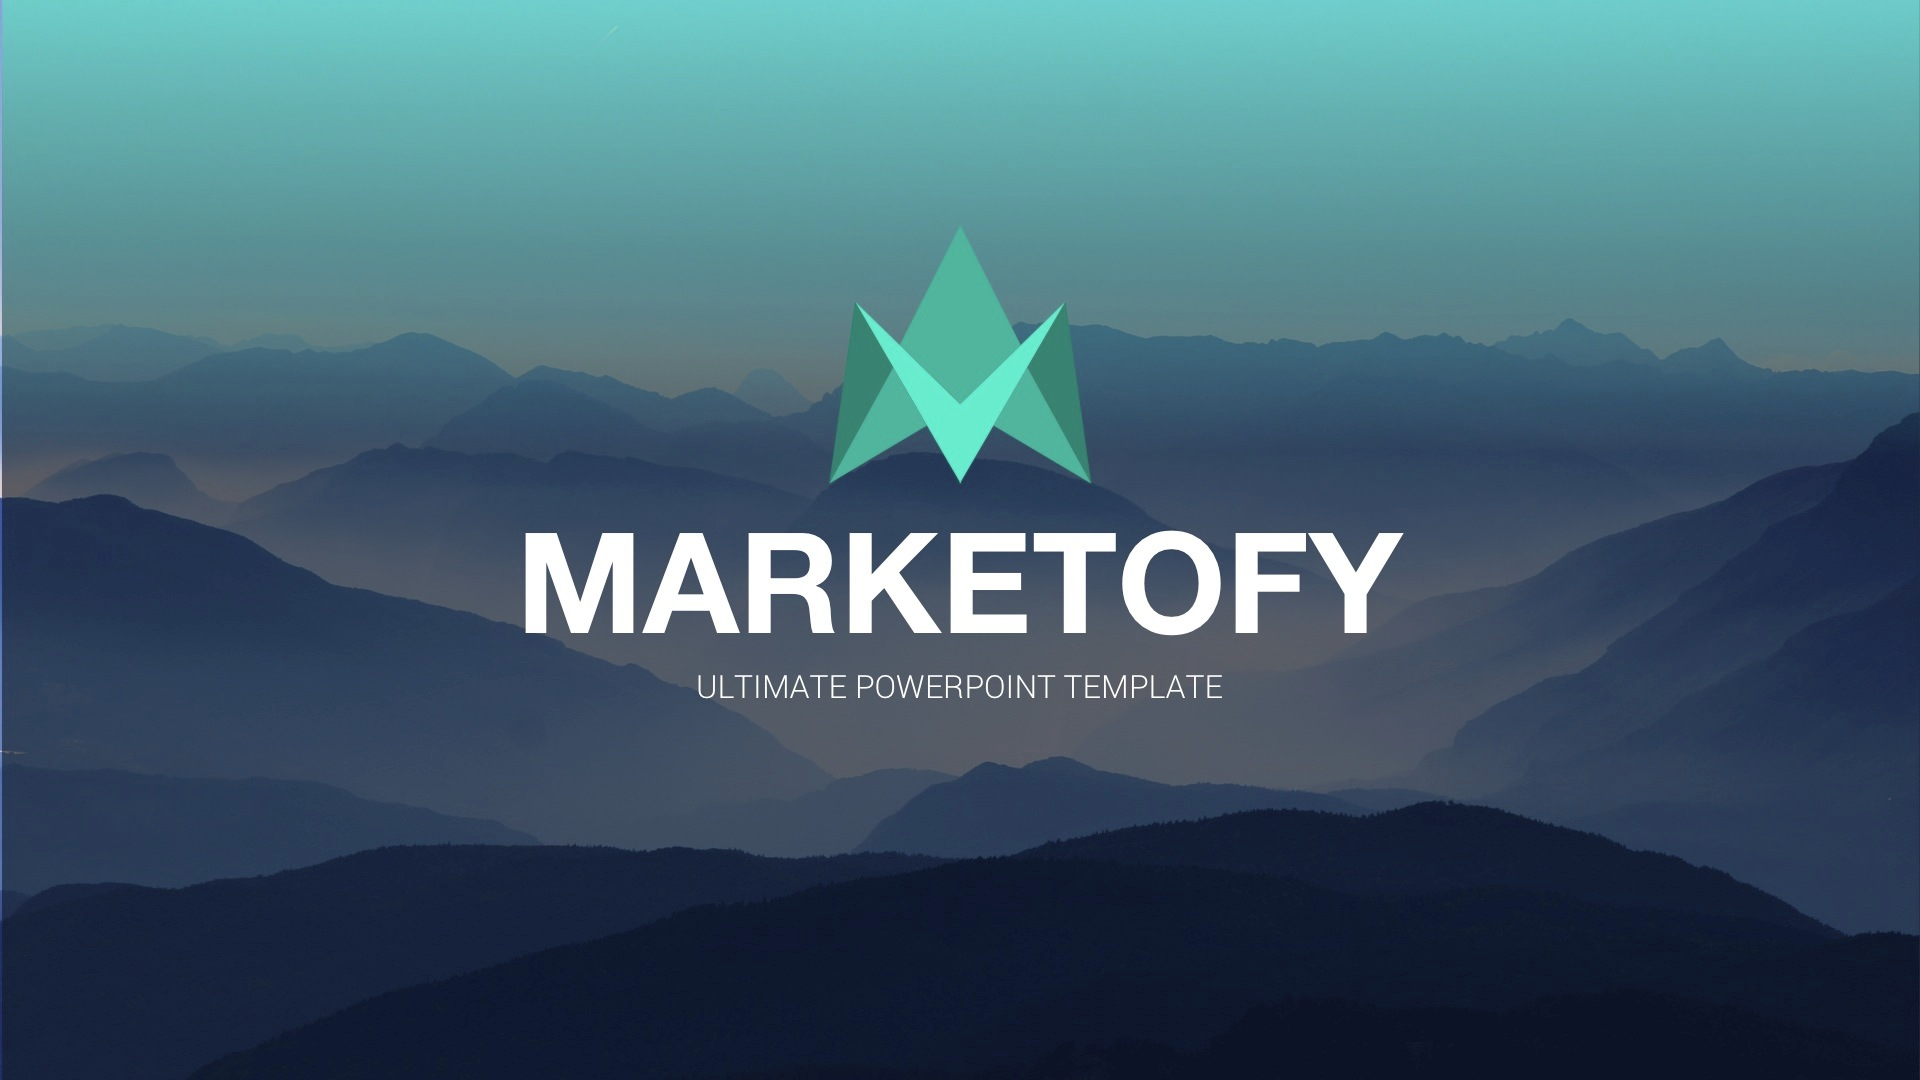 Marketofy ultimate powerpoint template by slidefusion graphicriver powerpoint templates marketofy v2 screenshotsslide001g toneelgroepblik Gallery